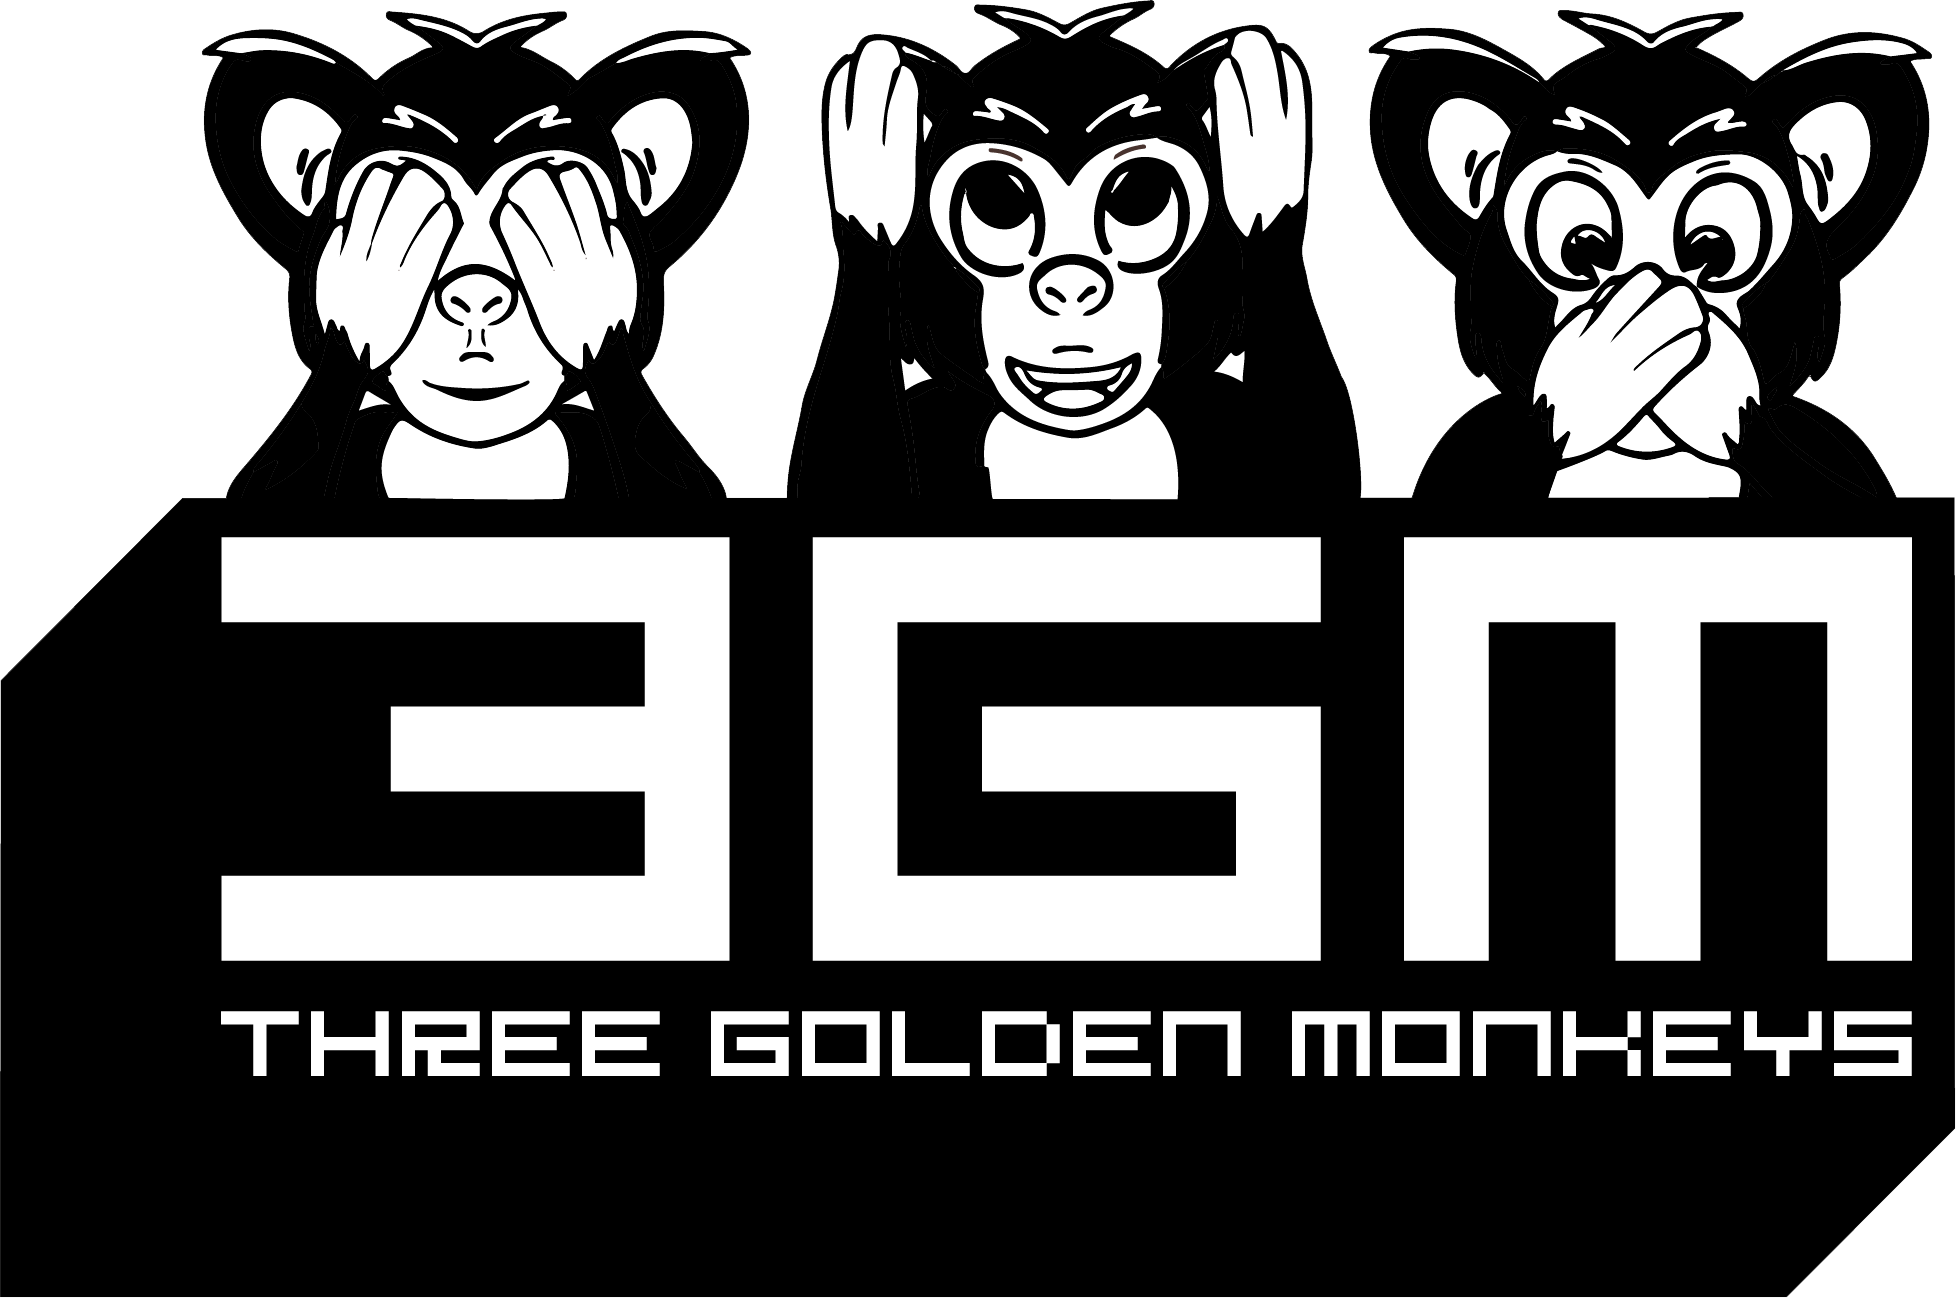 CROSS - Three Golden Monkeys Lab